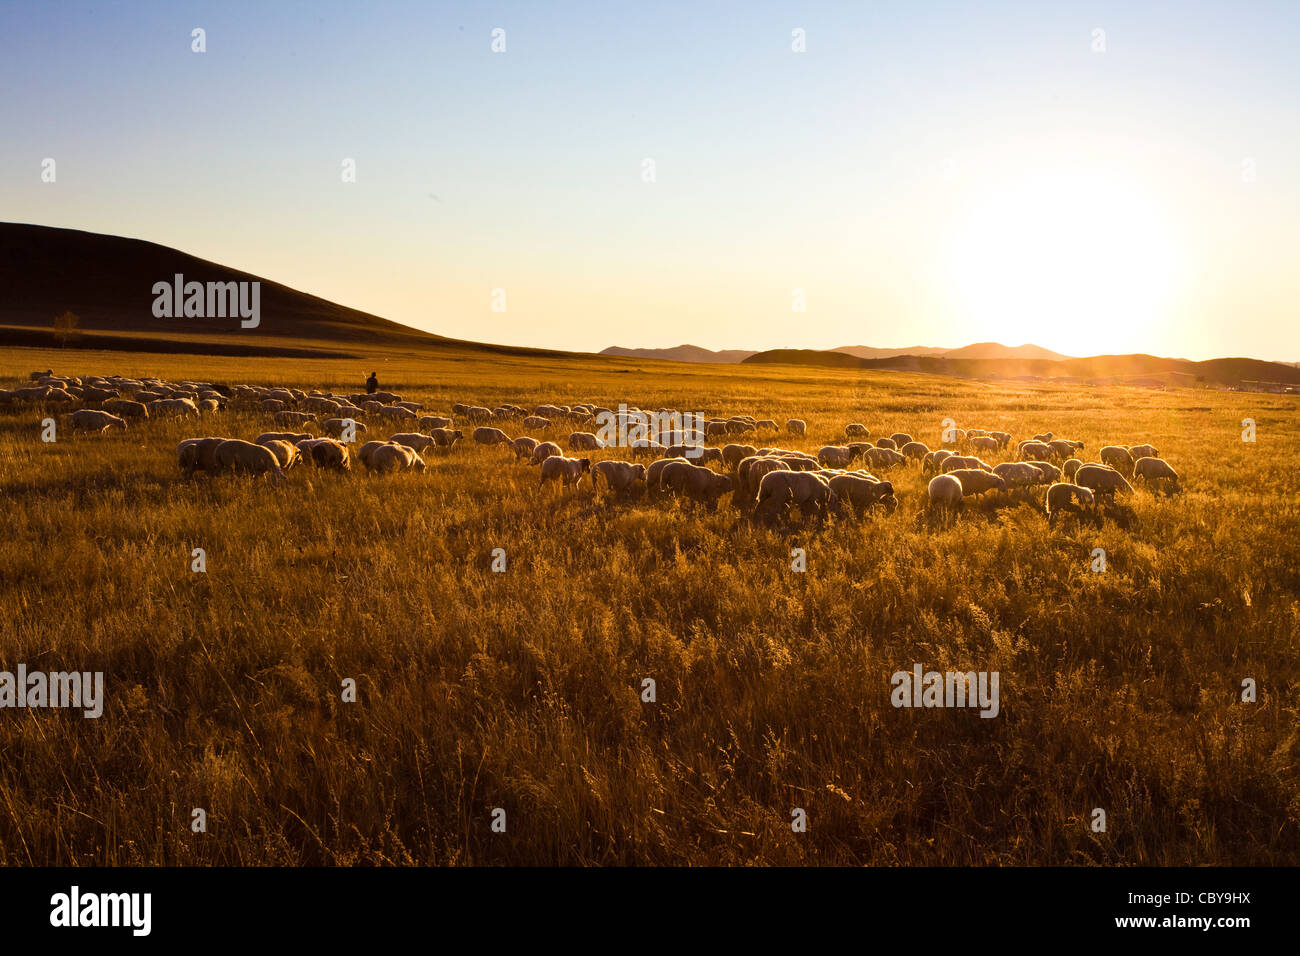 Sheep grazing in a field - Stock Image